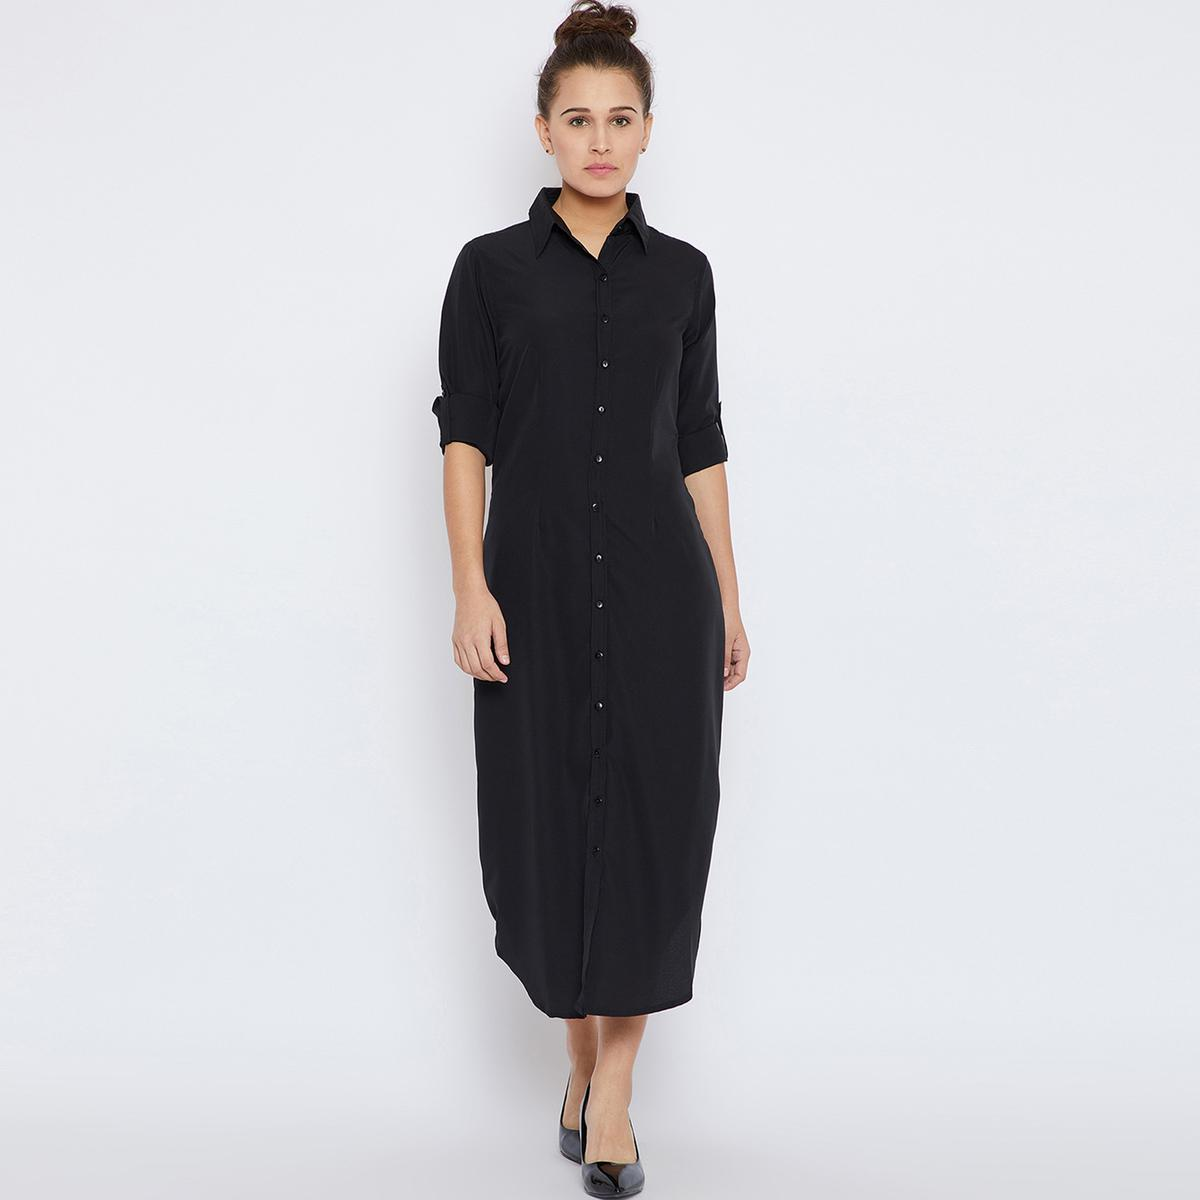 Glorious Black Colored Casual Wear Crepe Button Down Shirt Dress With Roll Up Sleeve